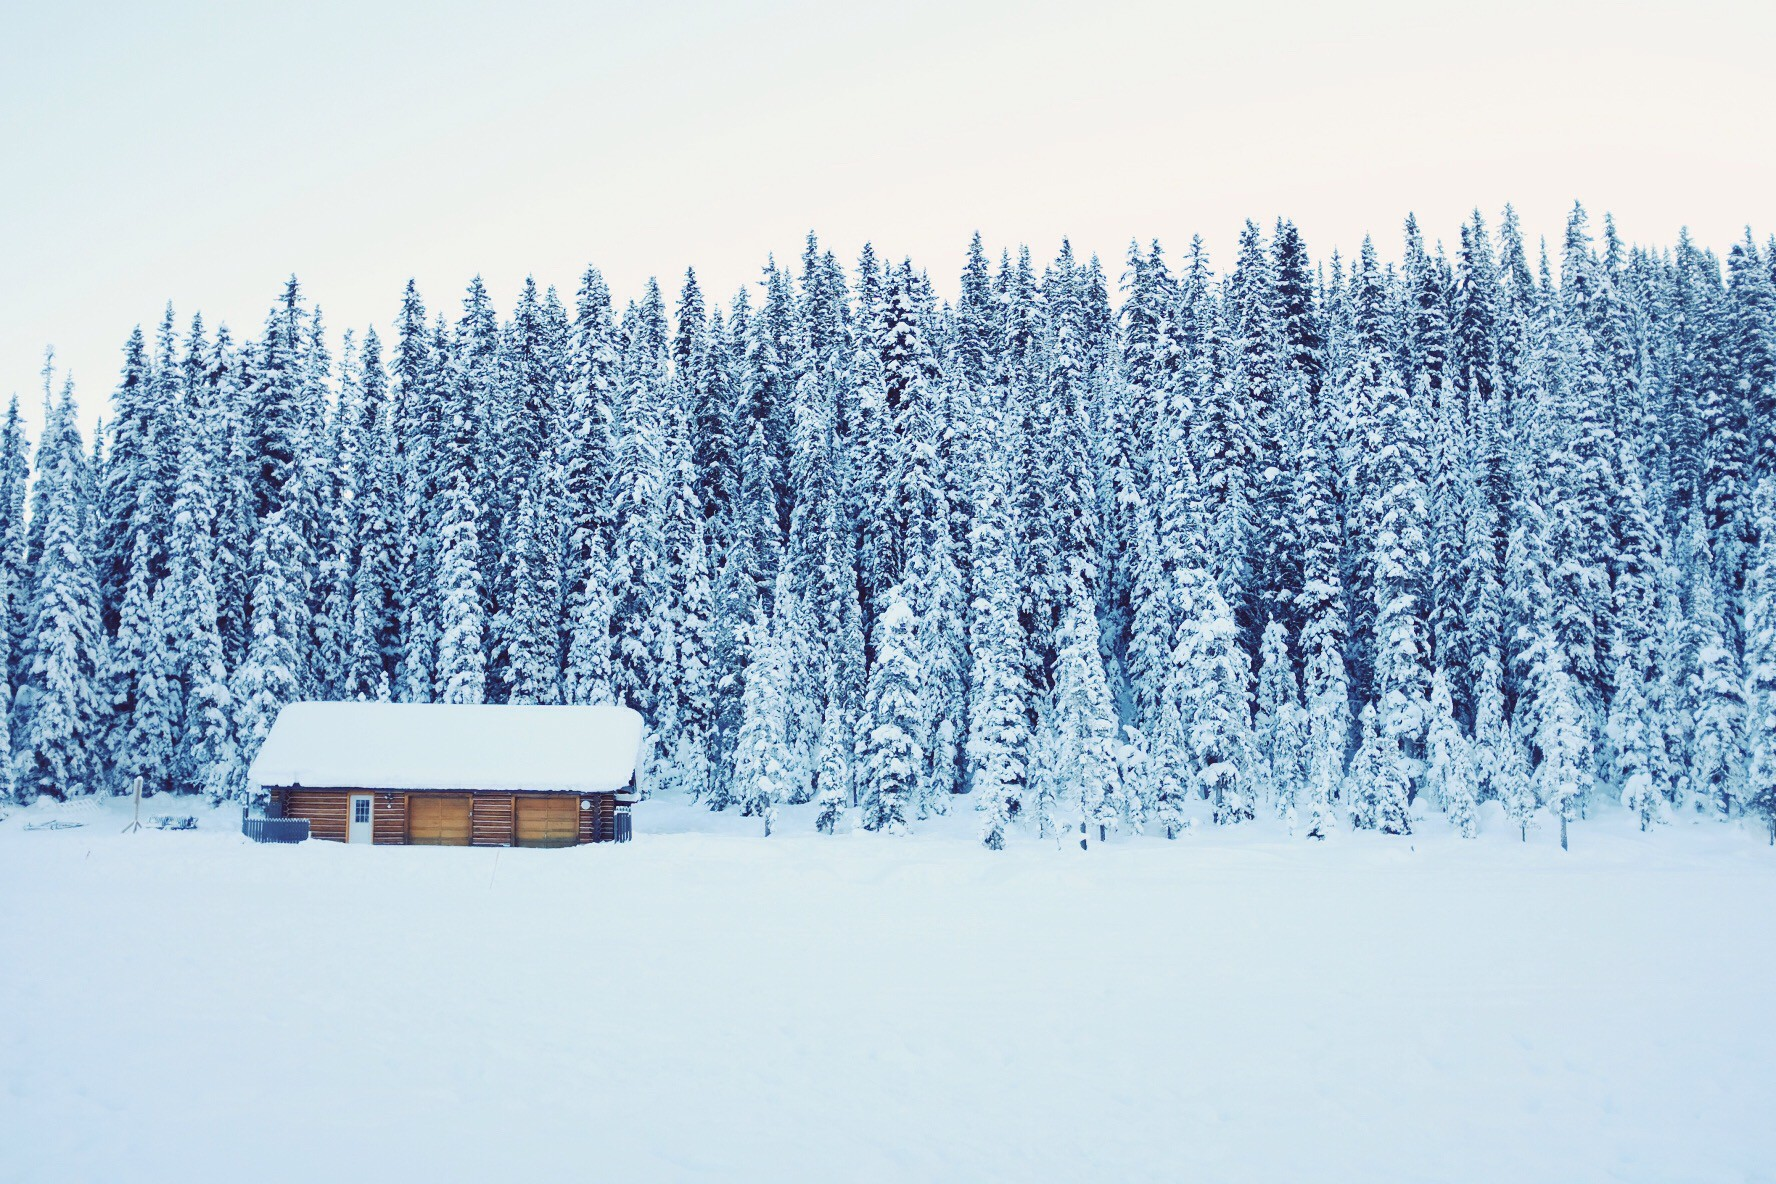 10 of Finland's Stunning Lakeside Cottages You Can Actually